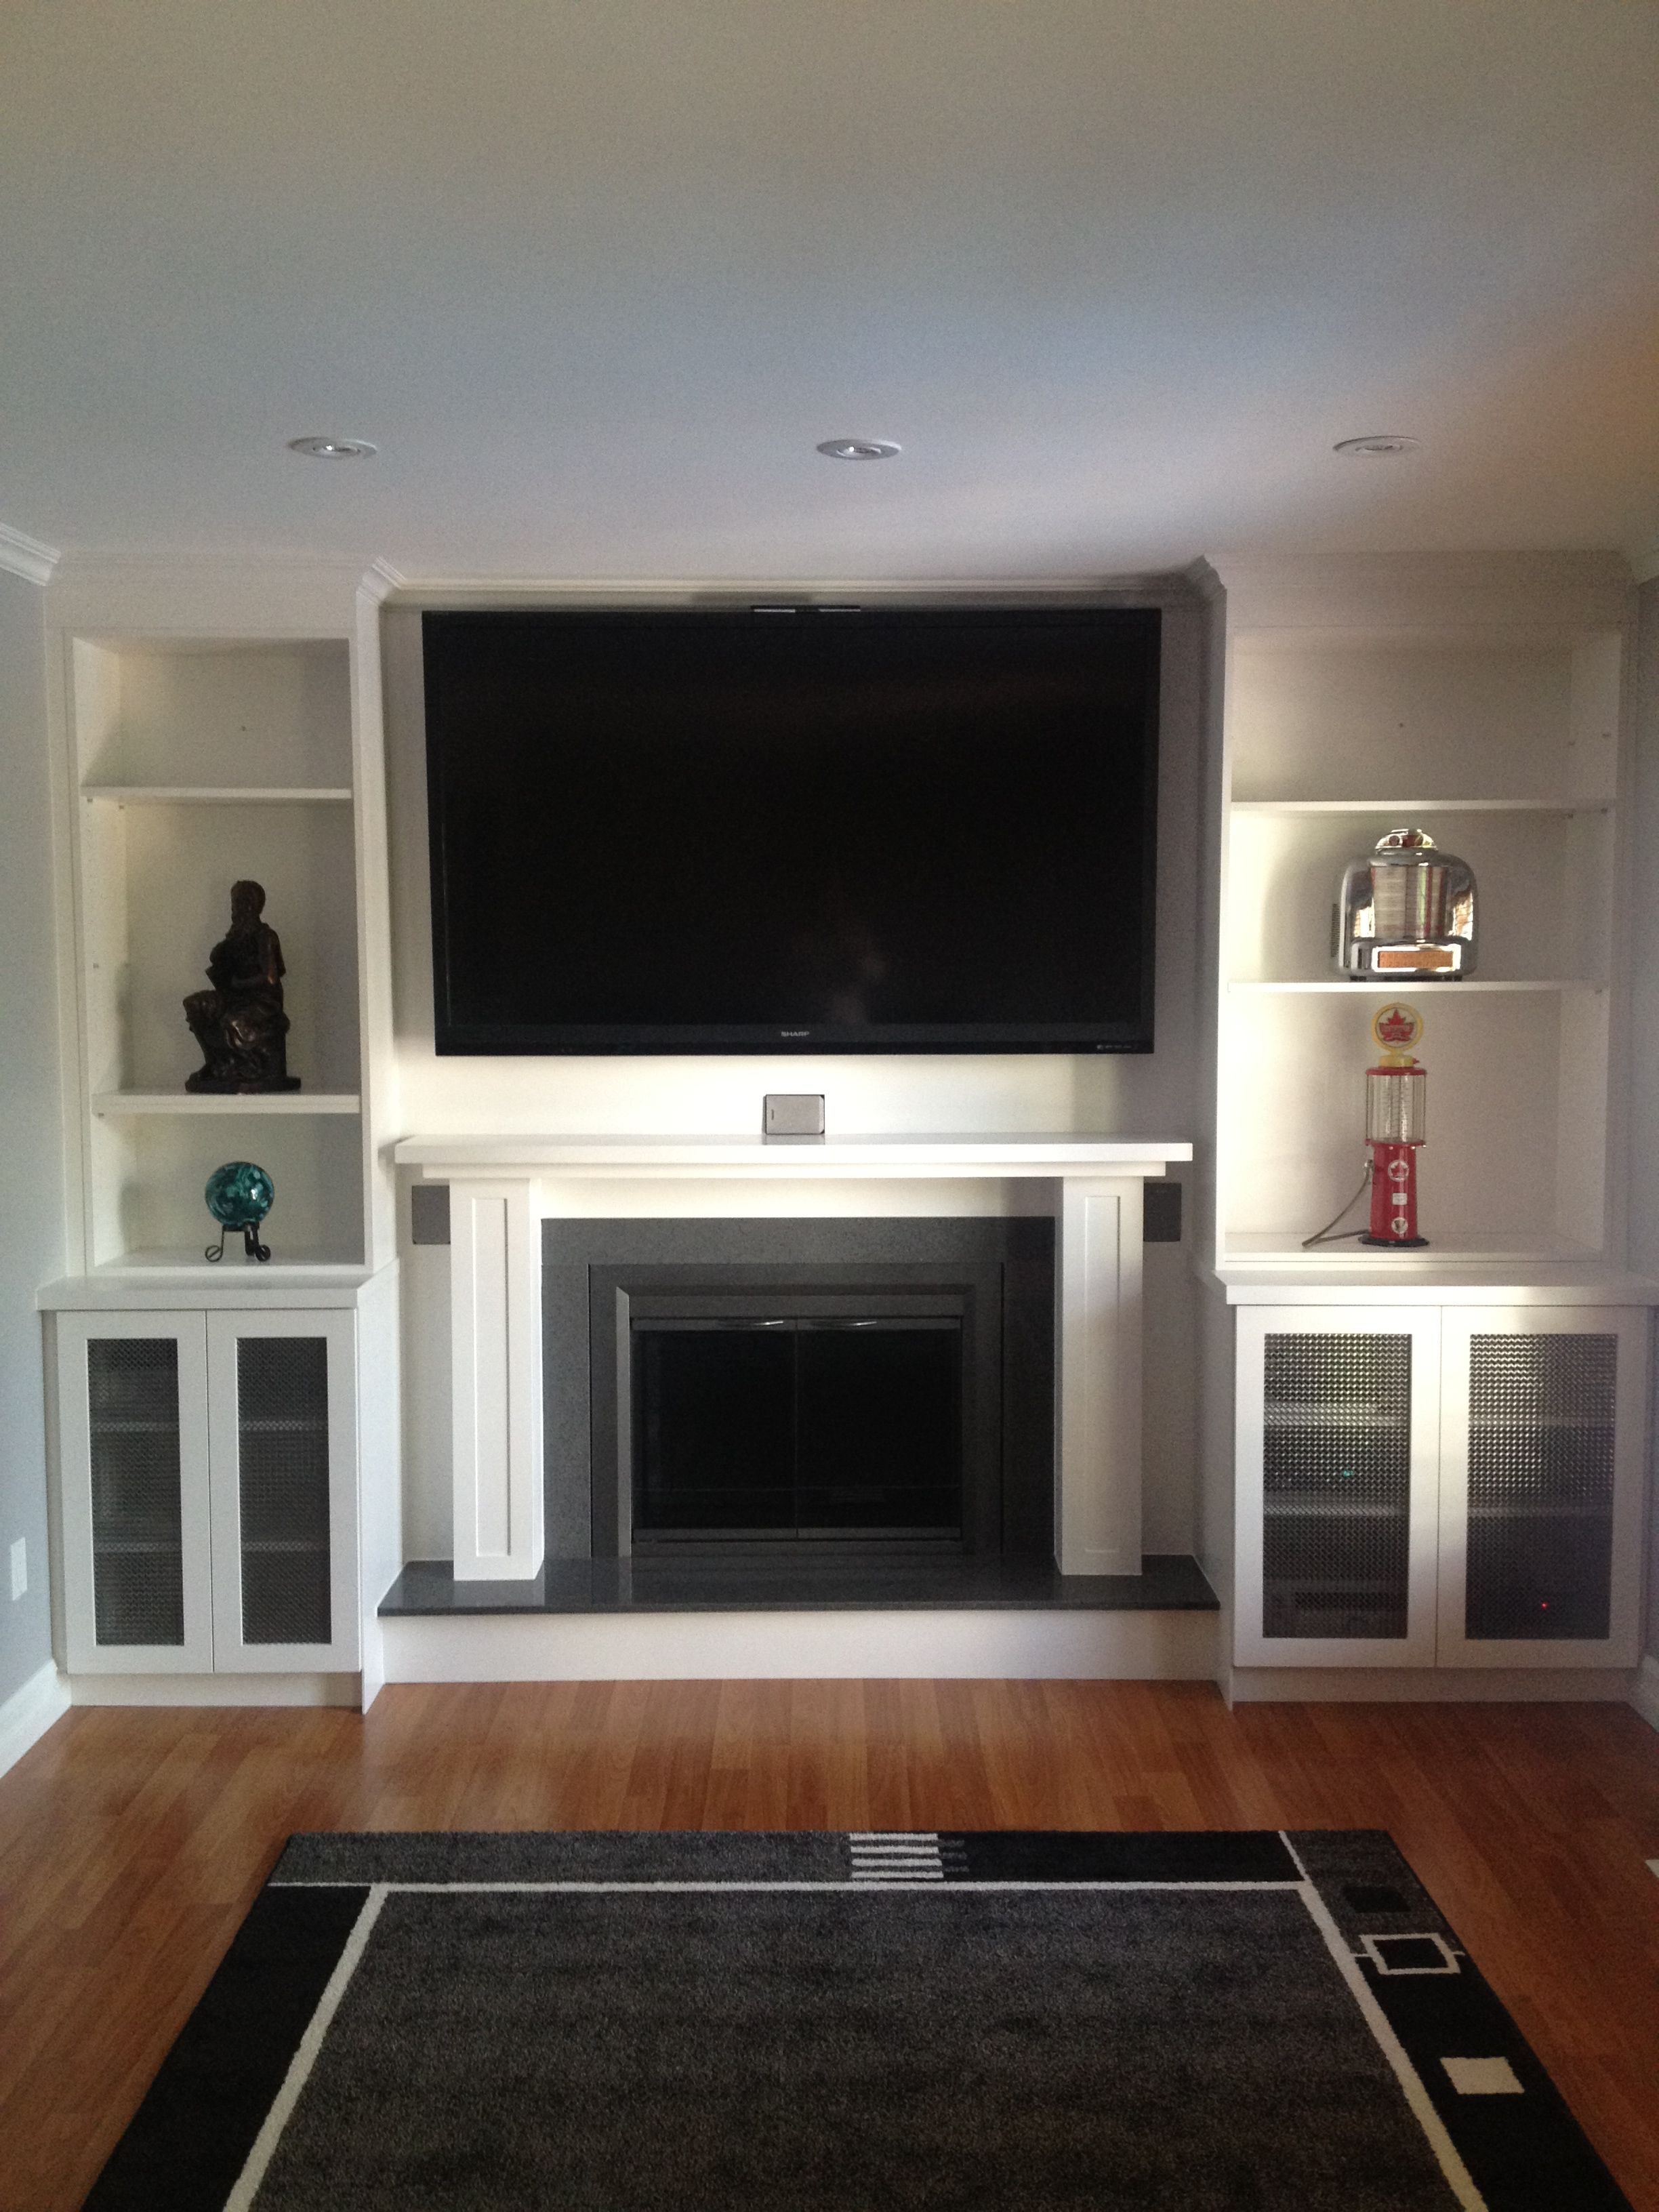 Our project we covered an existing brick fireplace and wall with